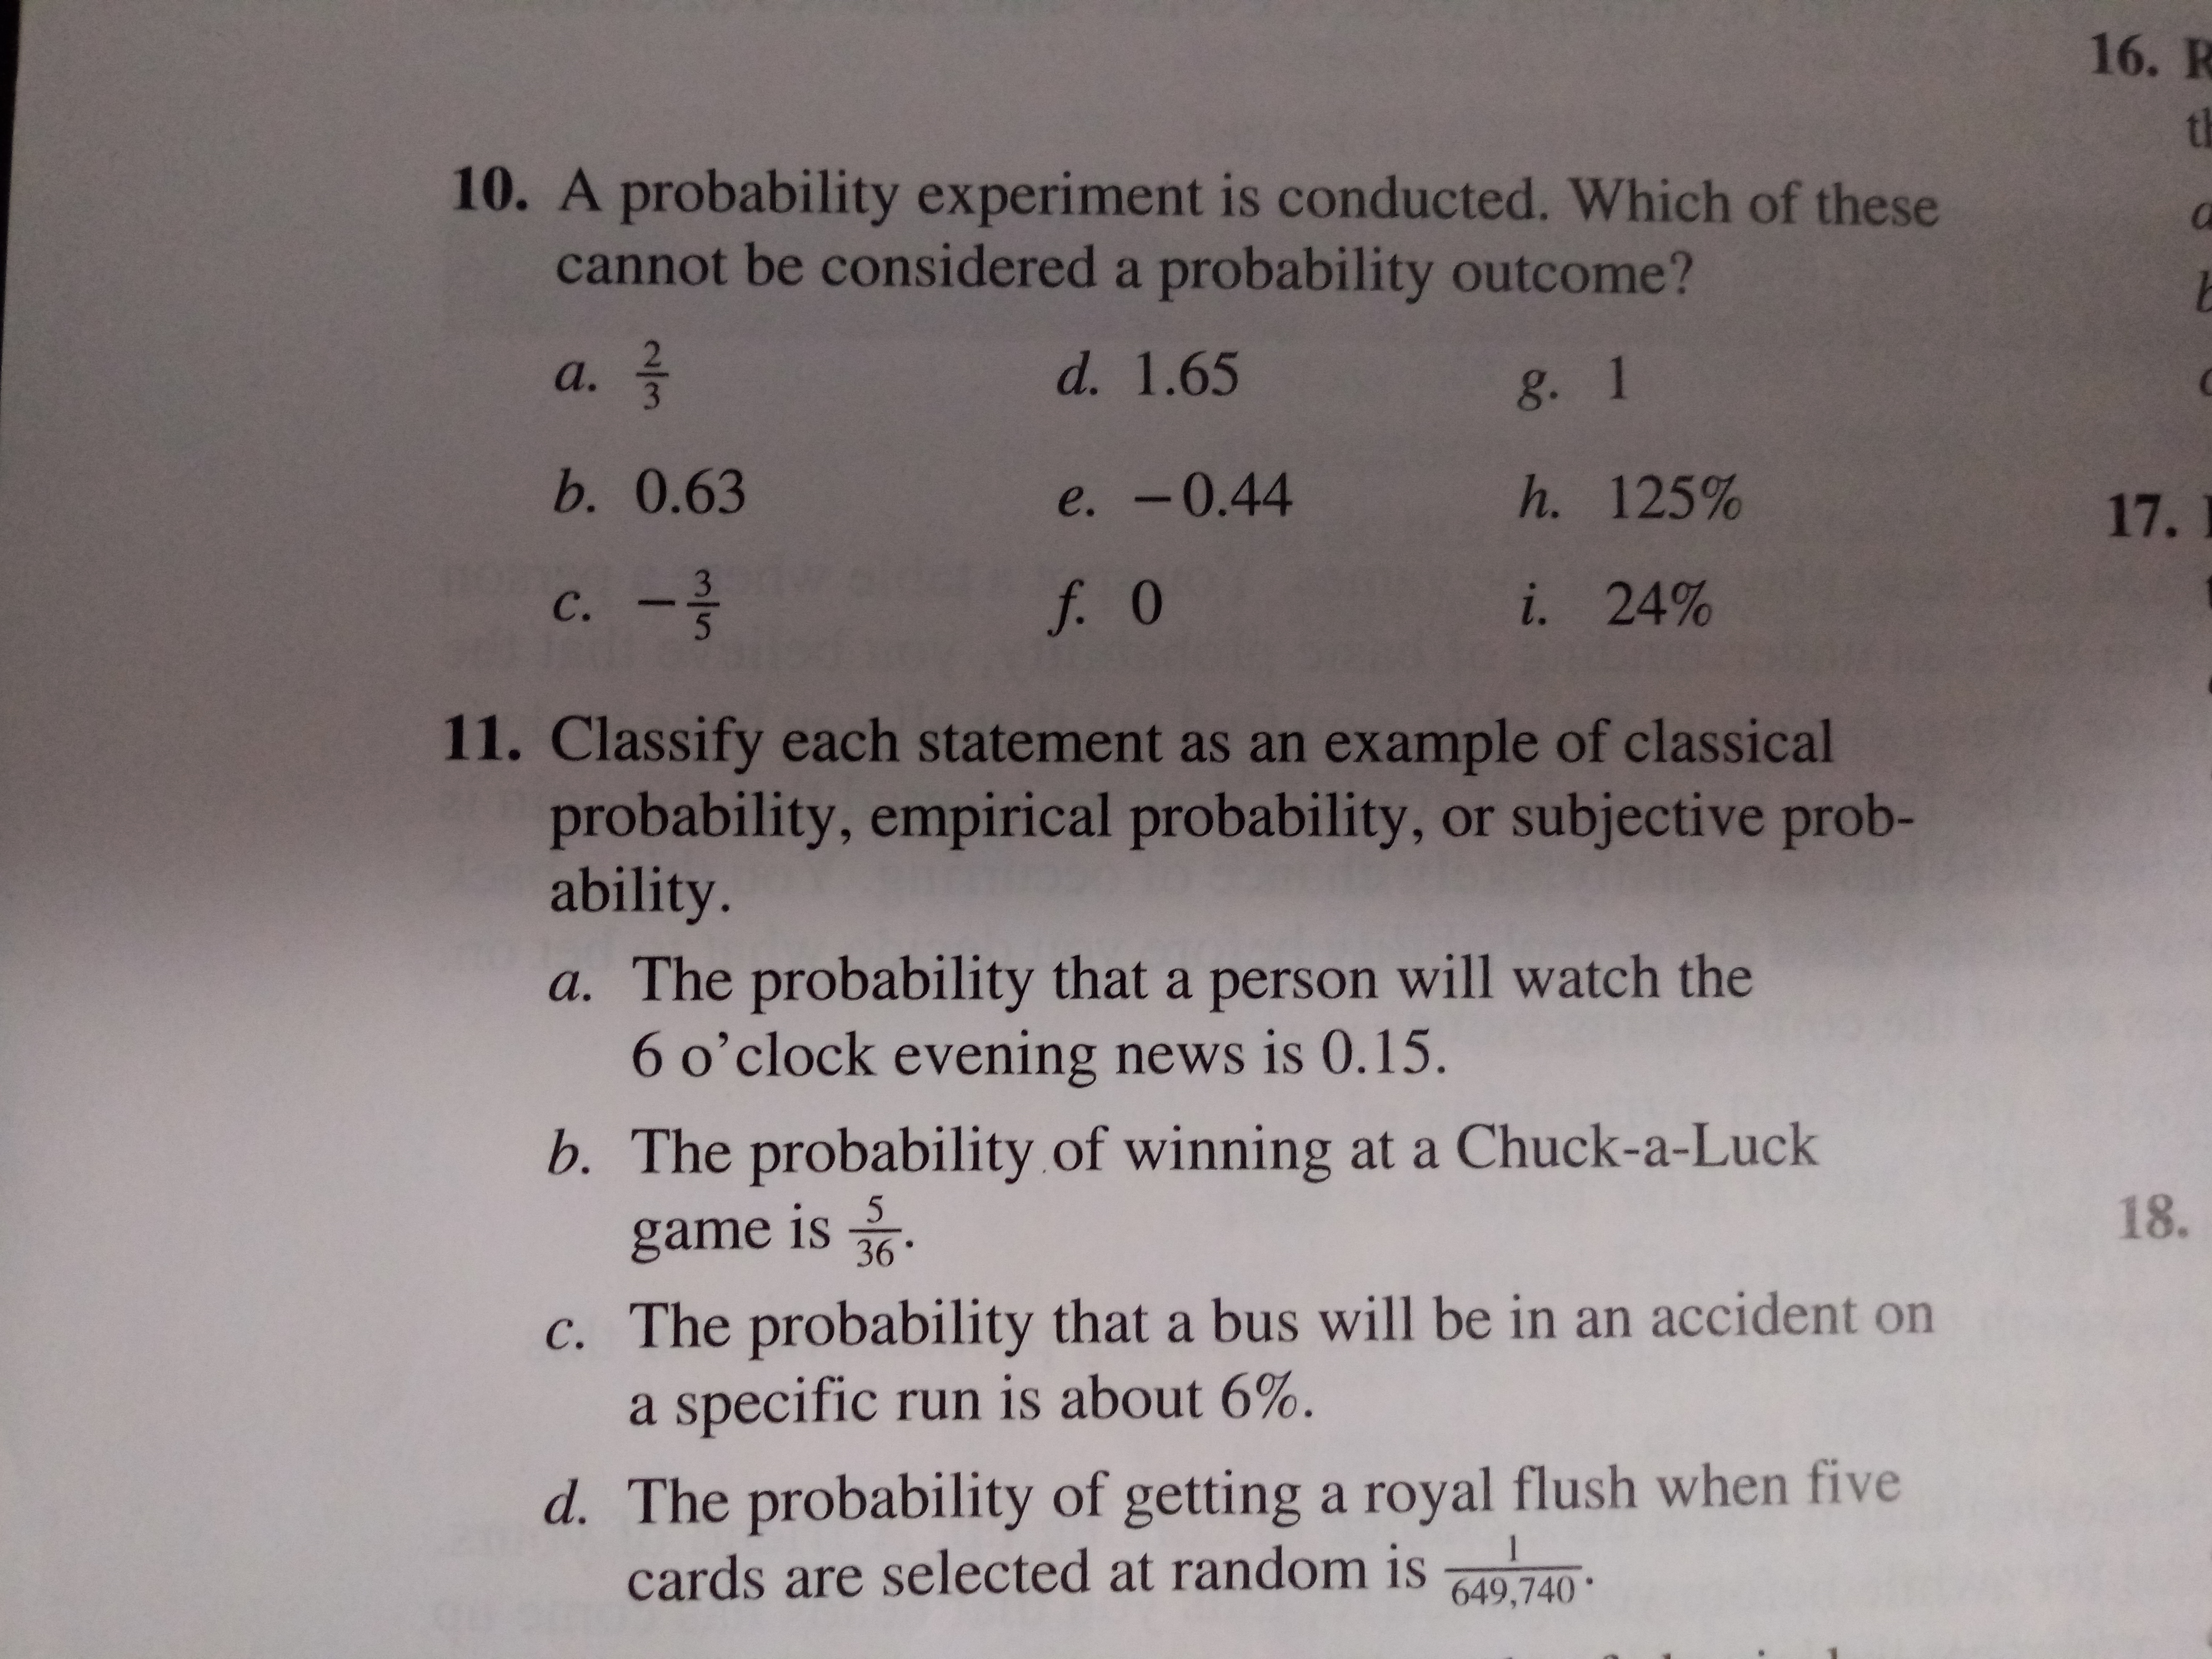 16. R th 10. A probability experiment is conducted. Which of these cannot be considered a probability outcome? d. 1.65 а. g. 1 b. 0.63 h. 125% e. -0.44 17. 3 i. 24% f. 0 с. 11. Classify each statement as an example of classical probability, empirical probability, or subjective prob- ability. a. The probability that a person will watch the 6 o'clock evening news is O.15. b. The probability of winning at a Chuck-a-Luck 18. 5 game is 36 c. The probability that a bus will be in an accident on a specific run is about 6%. d. The probability of gettinga royal flush when five cards are selected at random is 1 649,740